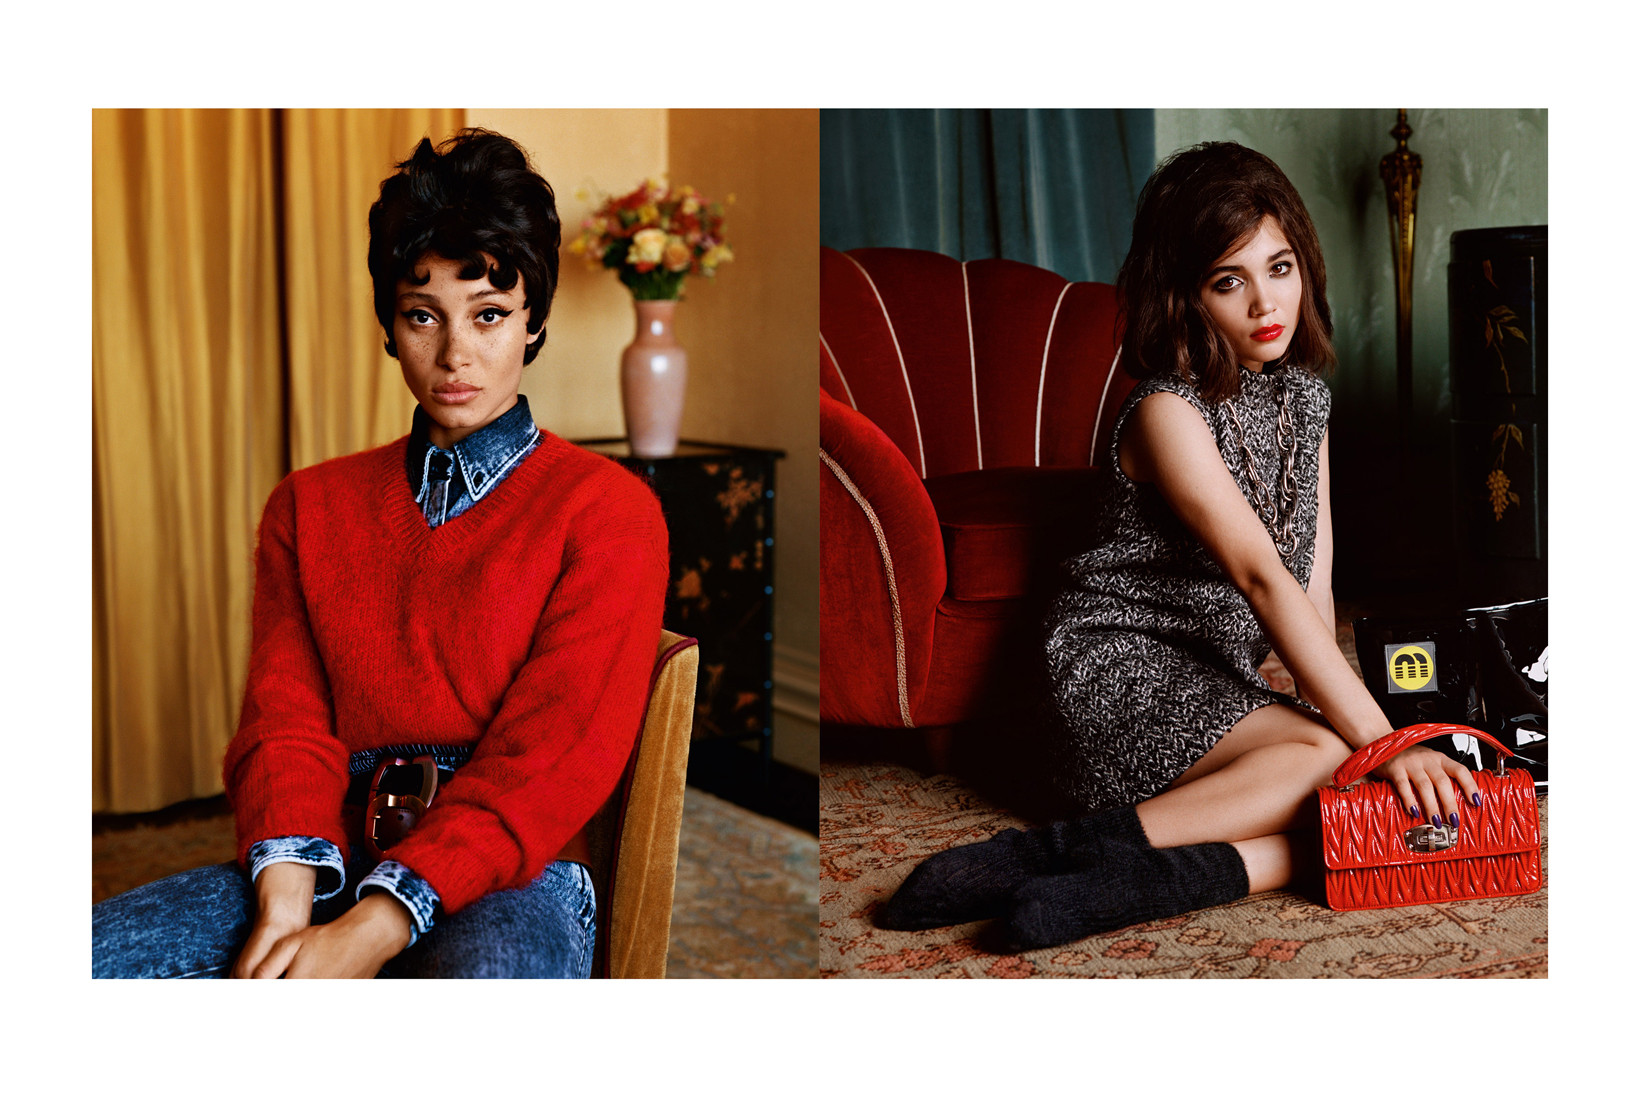 Miu Miu Fall/Winter 2018 Campaign Adwoa Aboah Sweater Red Rowan Blanchard Dress Black